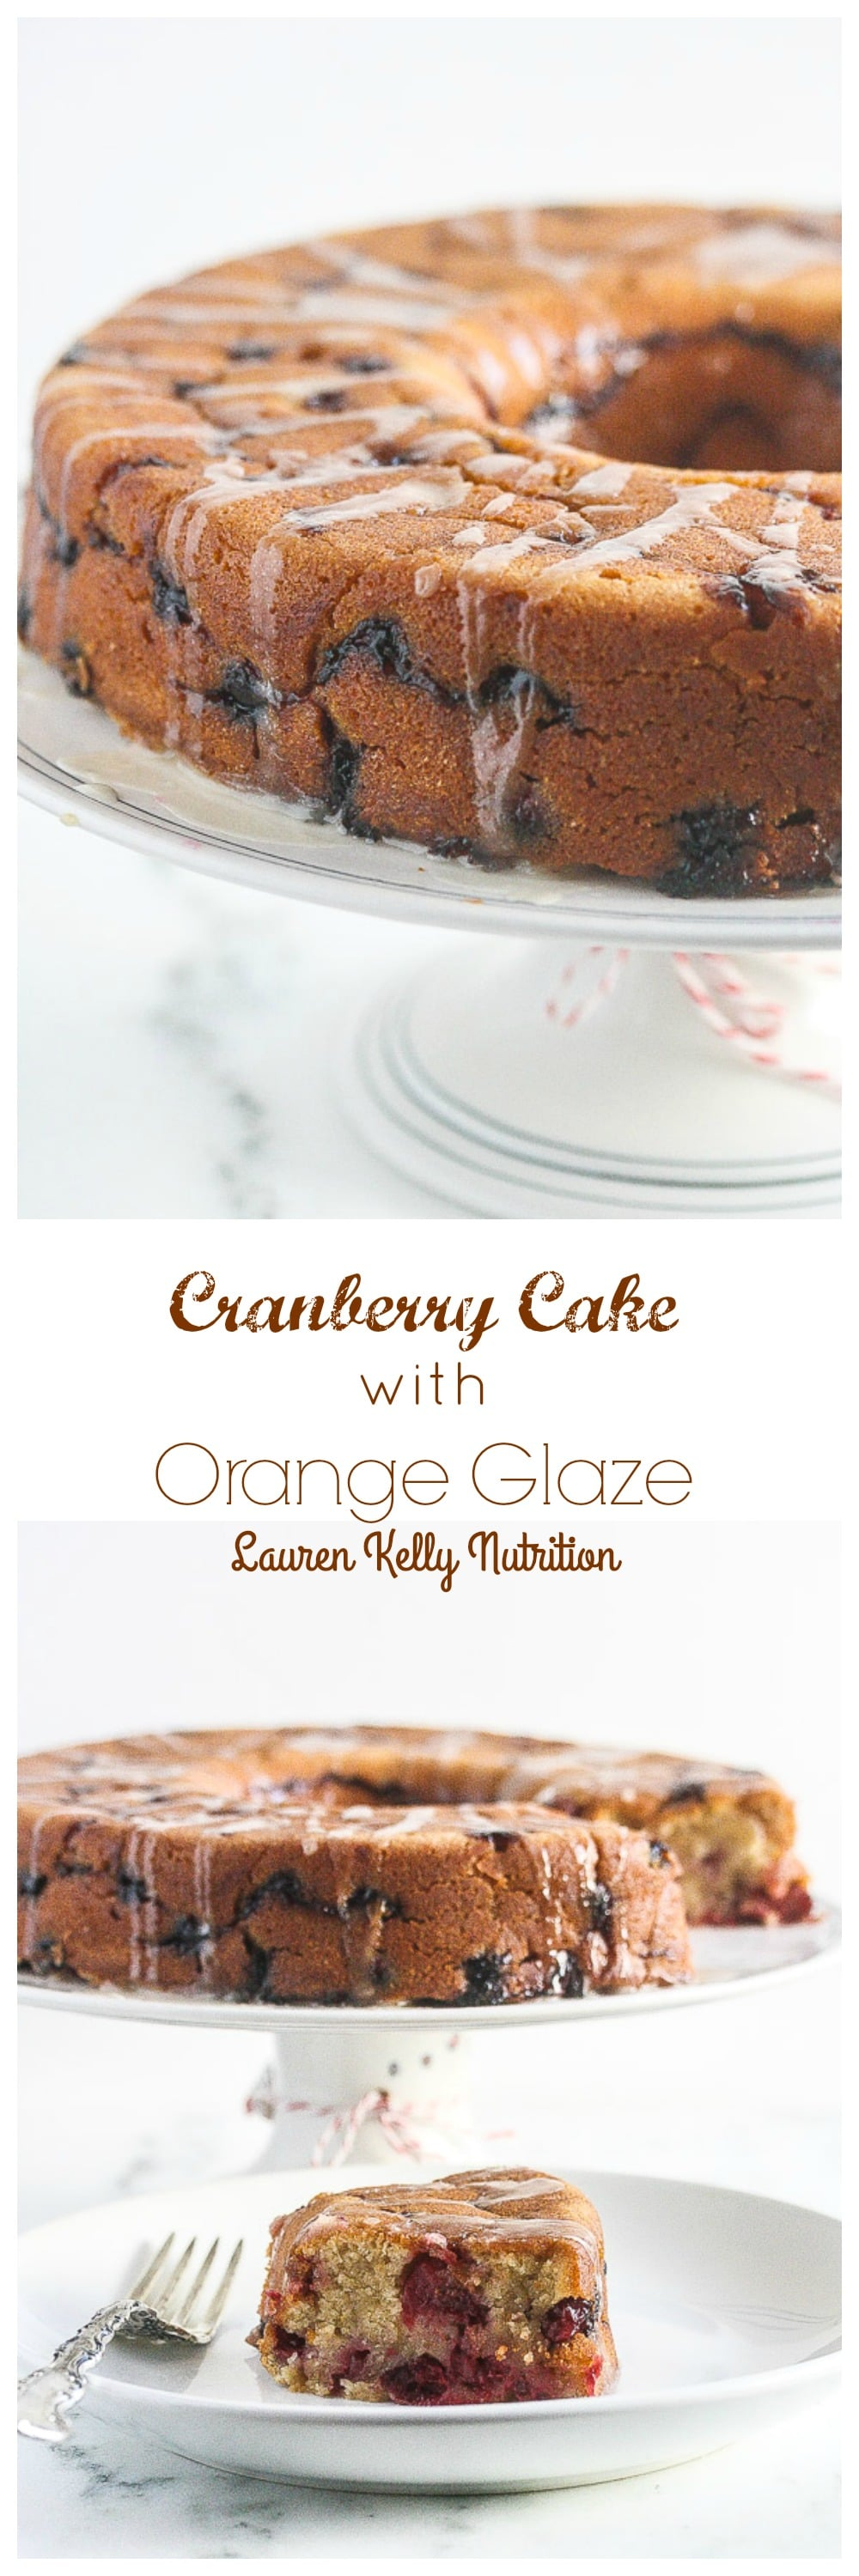 Cranberry Cake with Orange Glaze